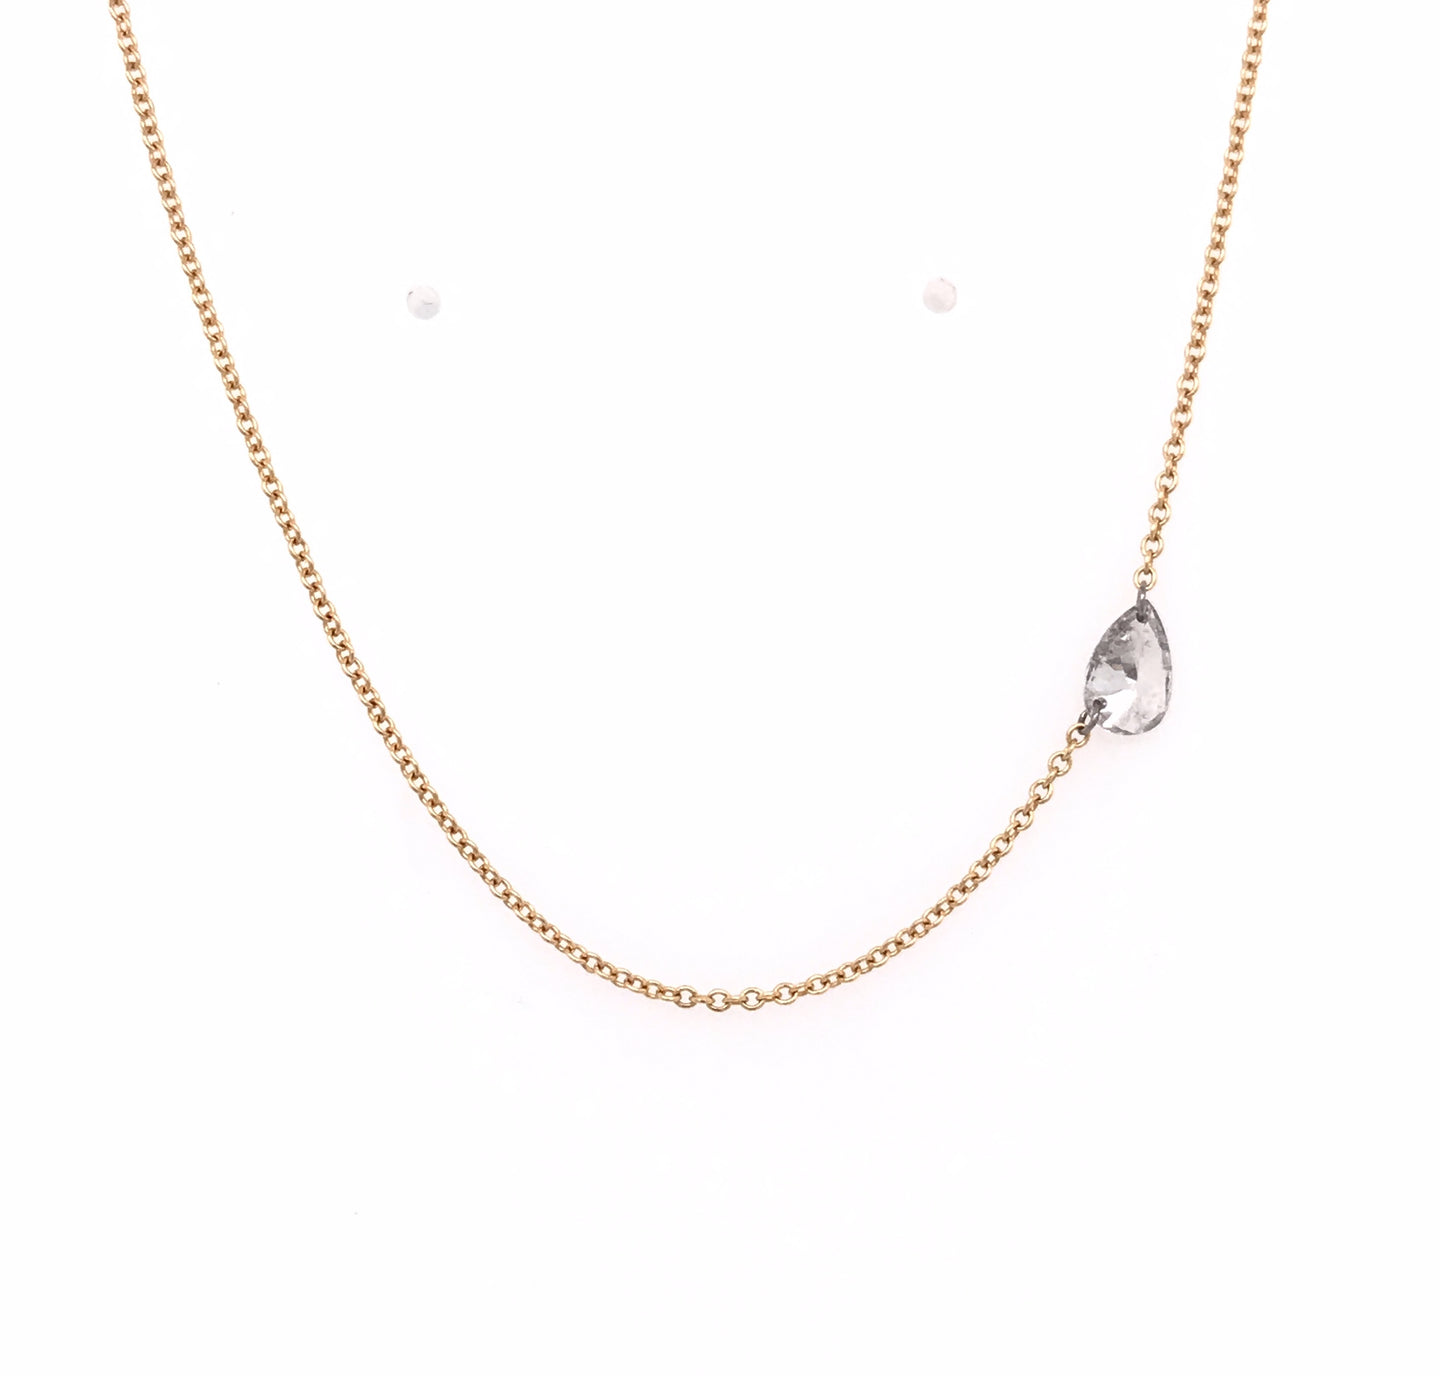 Free Set Pear Shaped Diamond Necklace